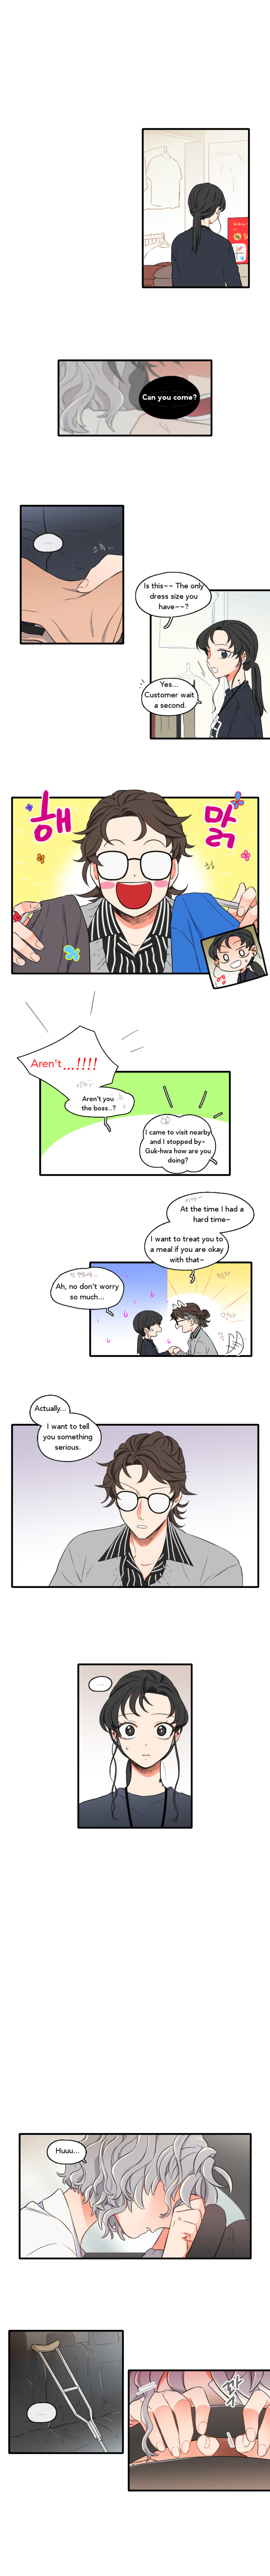 It'd Be Great If You Didn't Exist: 36. Manhwa So Read: Left to Right artist twitter: non official site: hopeyoudid_not join list: ItWouldBeGreat (123 subs)Menti